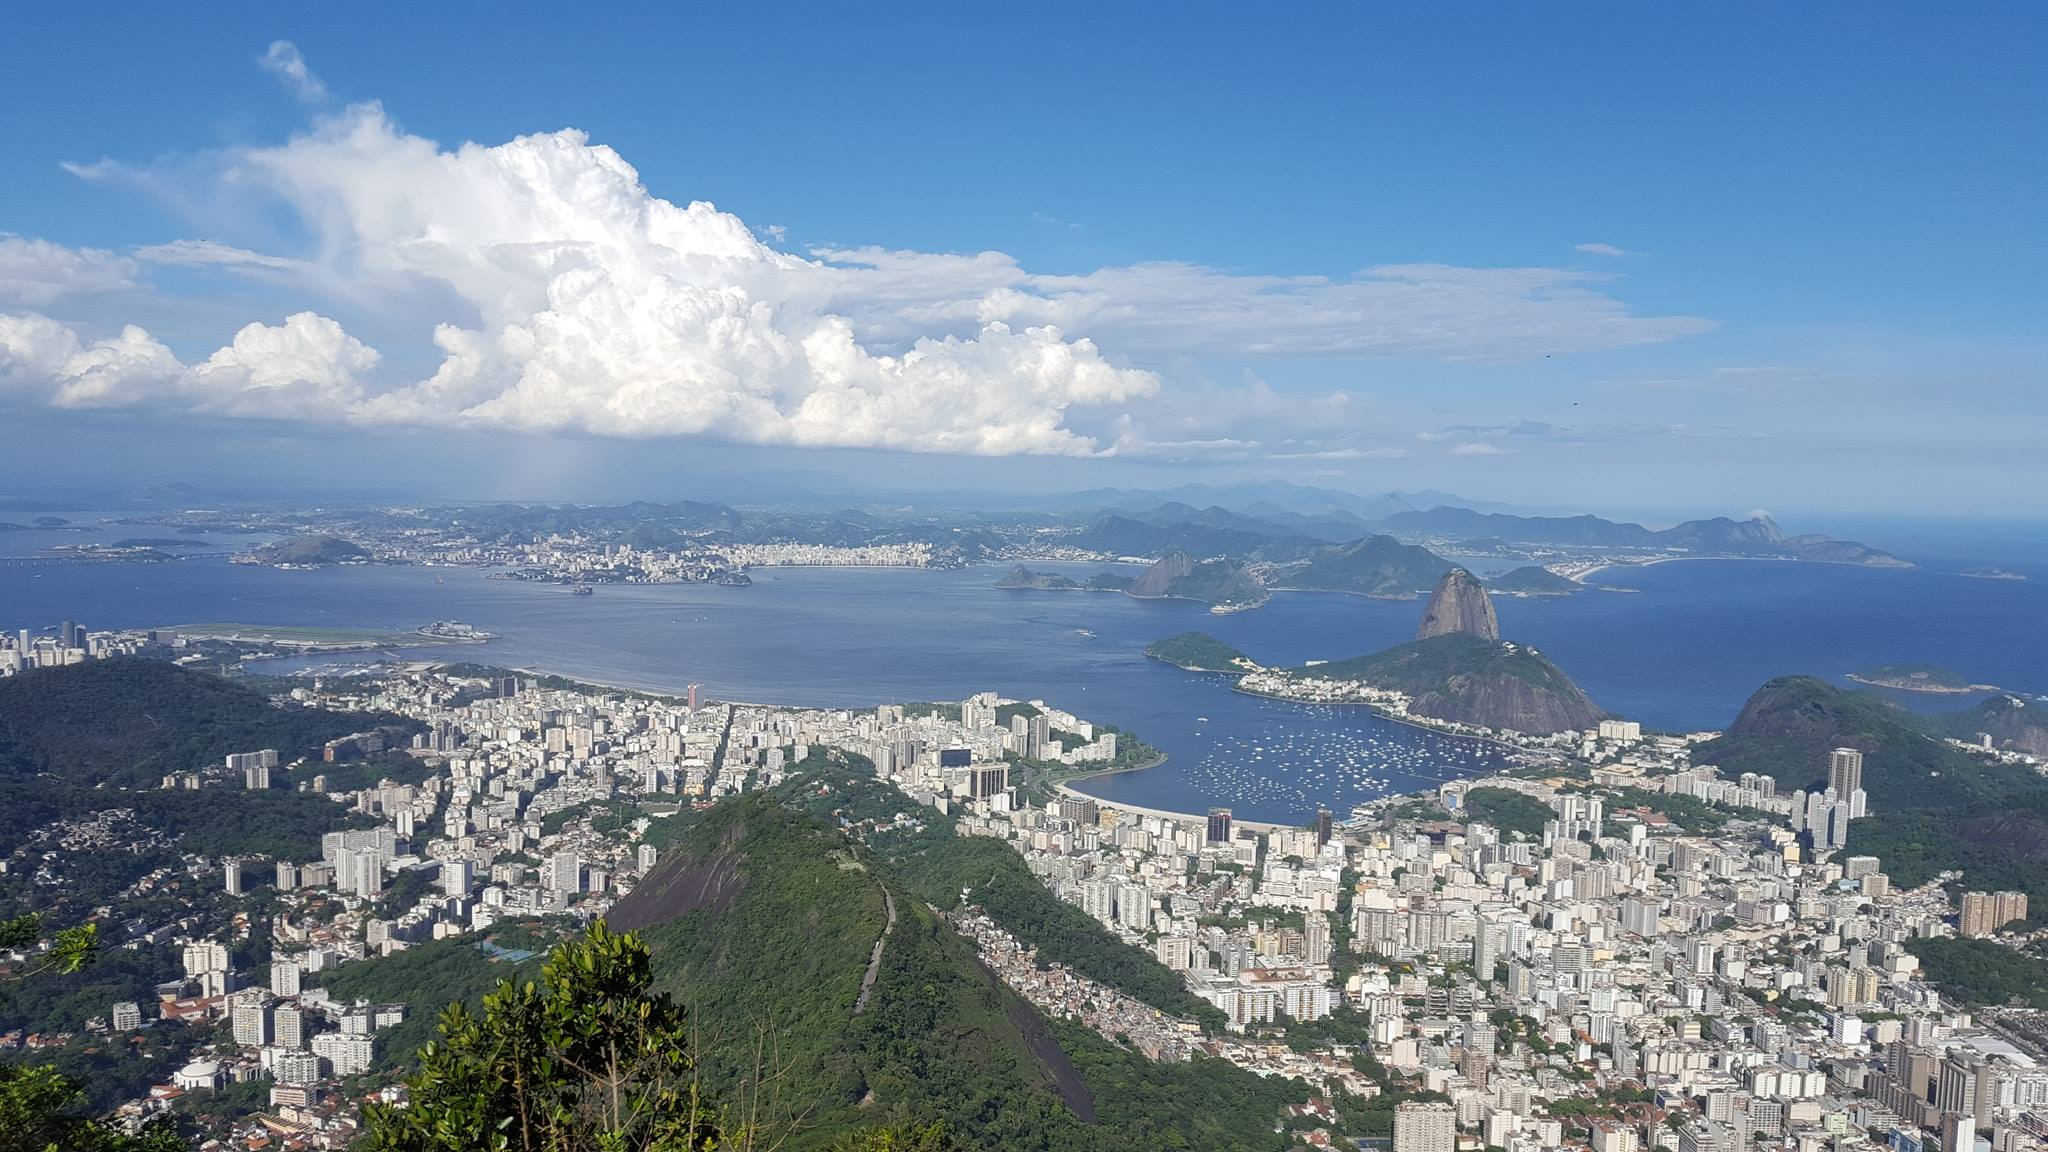 Marvelous City! View of Rio de Janeiro from the top of Corcovado.